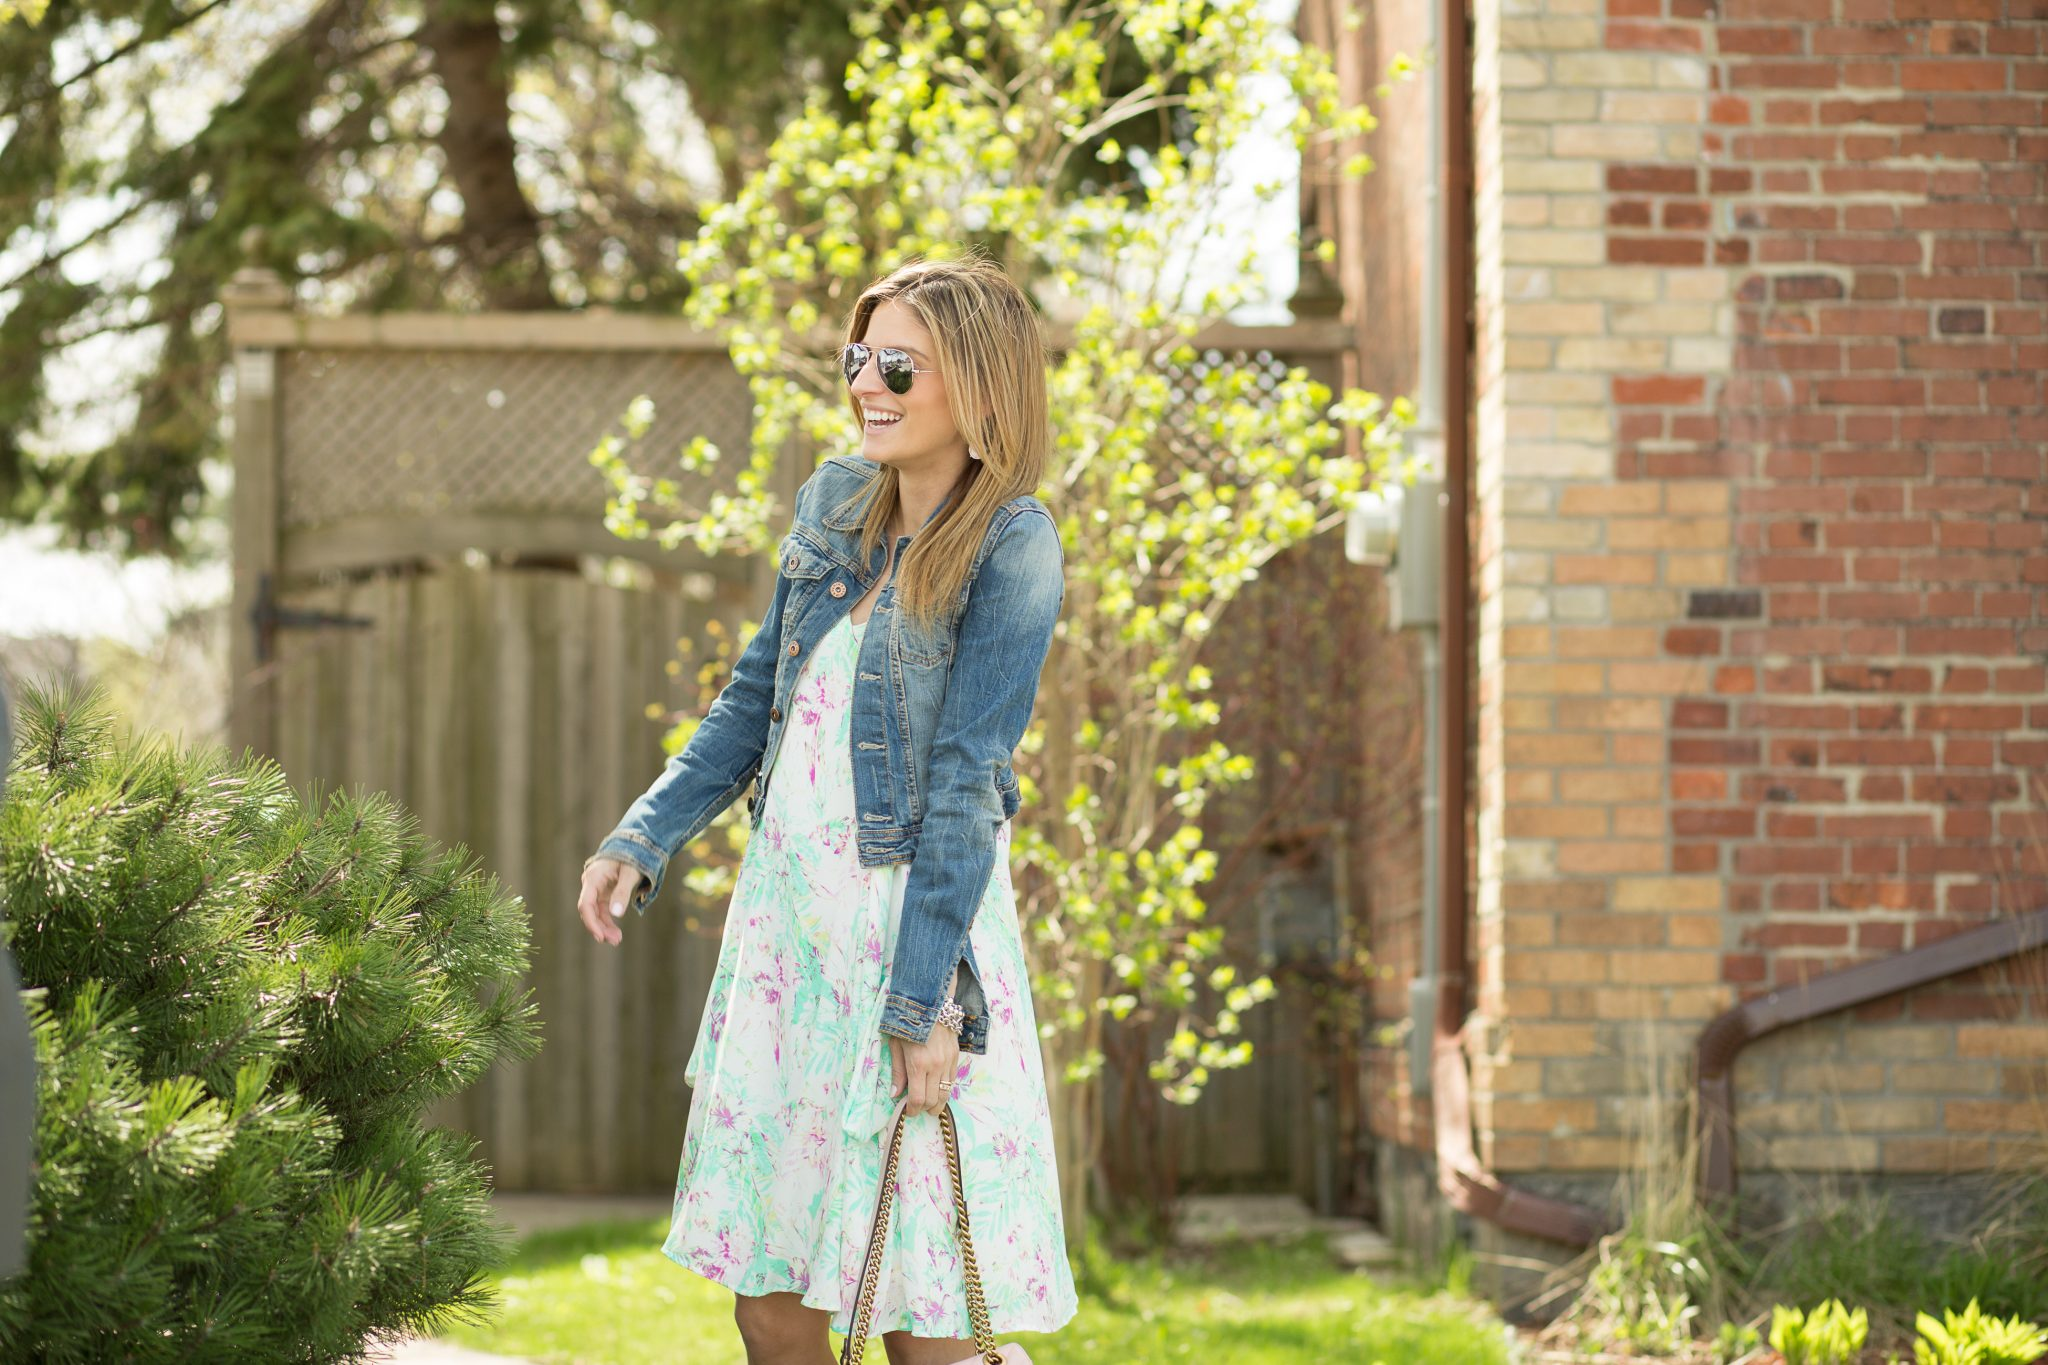 Summer dress with jean jacket and pink gucci bag